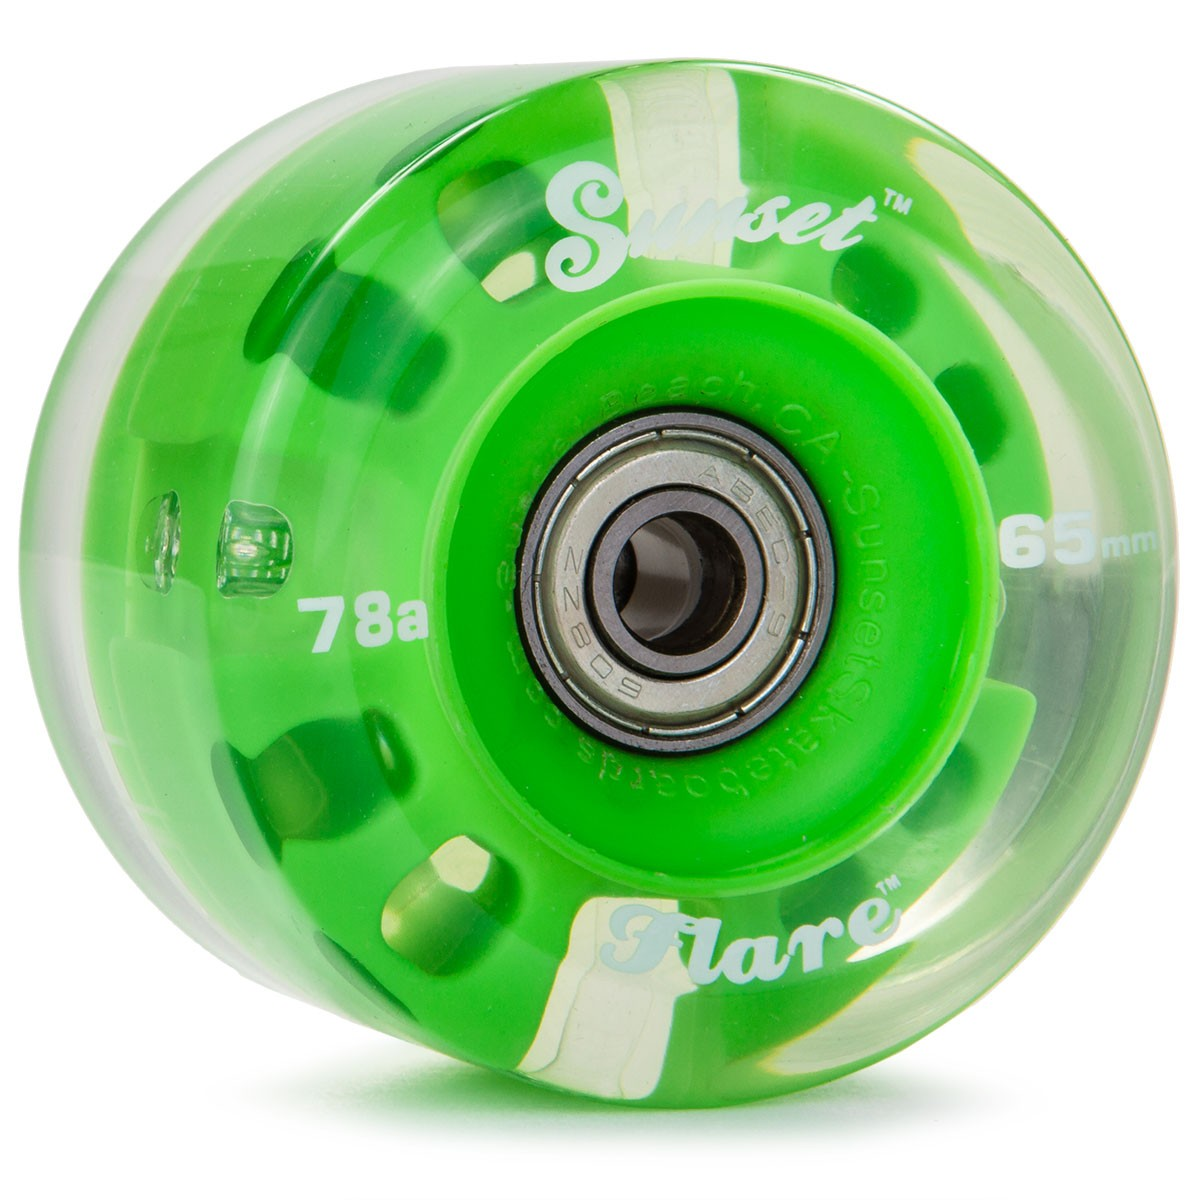 Longboard Wheels 65mm 78a Wheels 65mm 78a Green